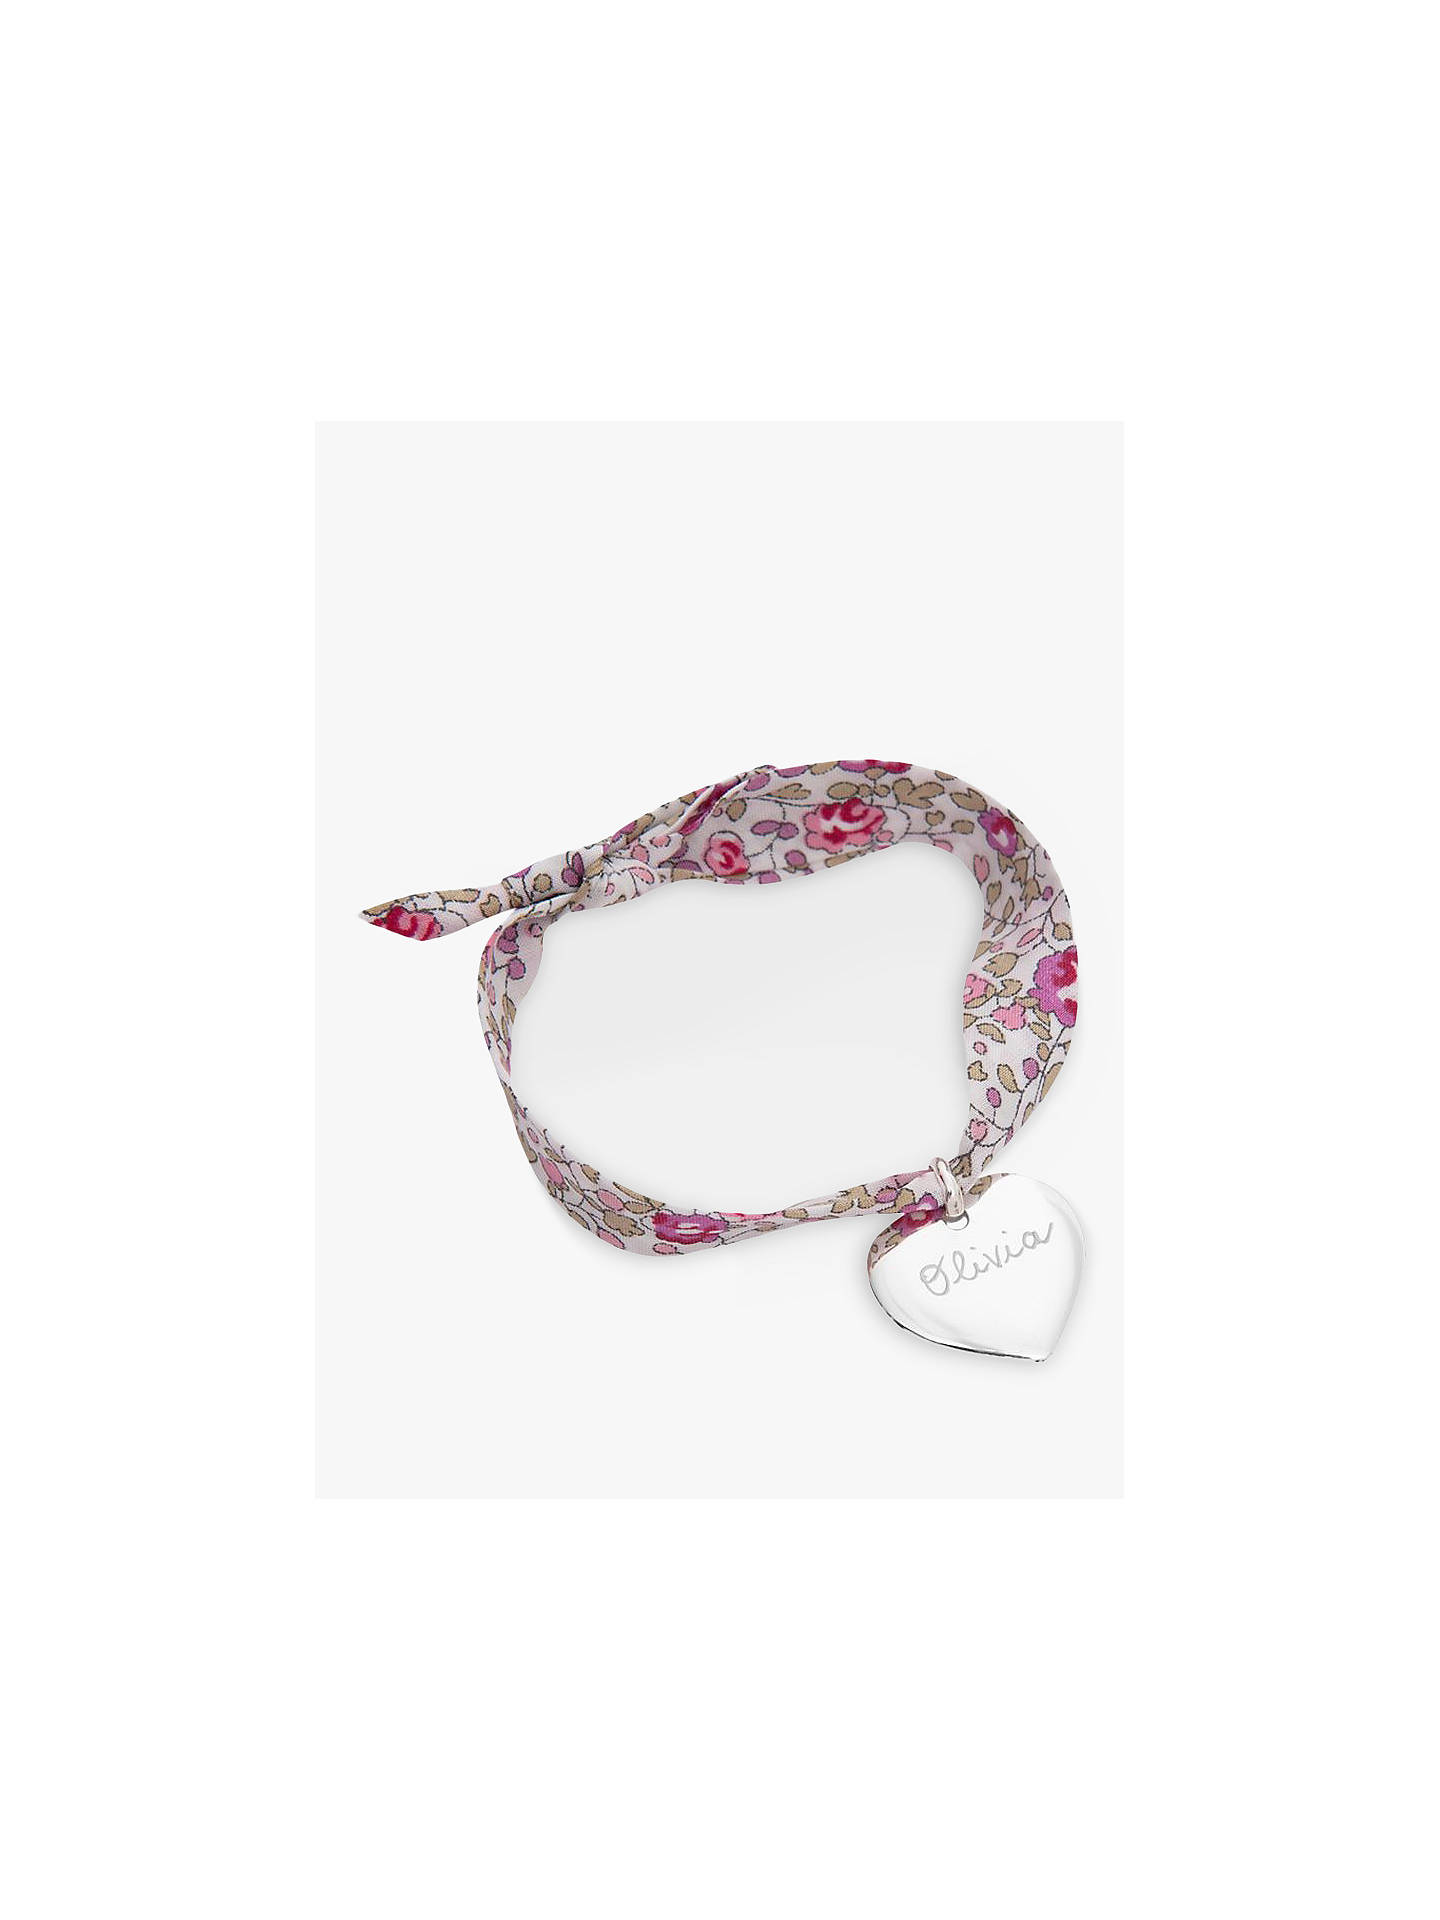 BuyMerci Maman Personalised Sterling Silver Heart Liberty Bracelet, Eloise Pink Online at johnlewis.com